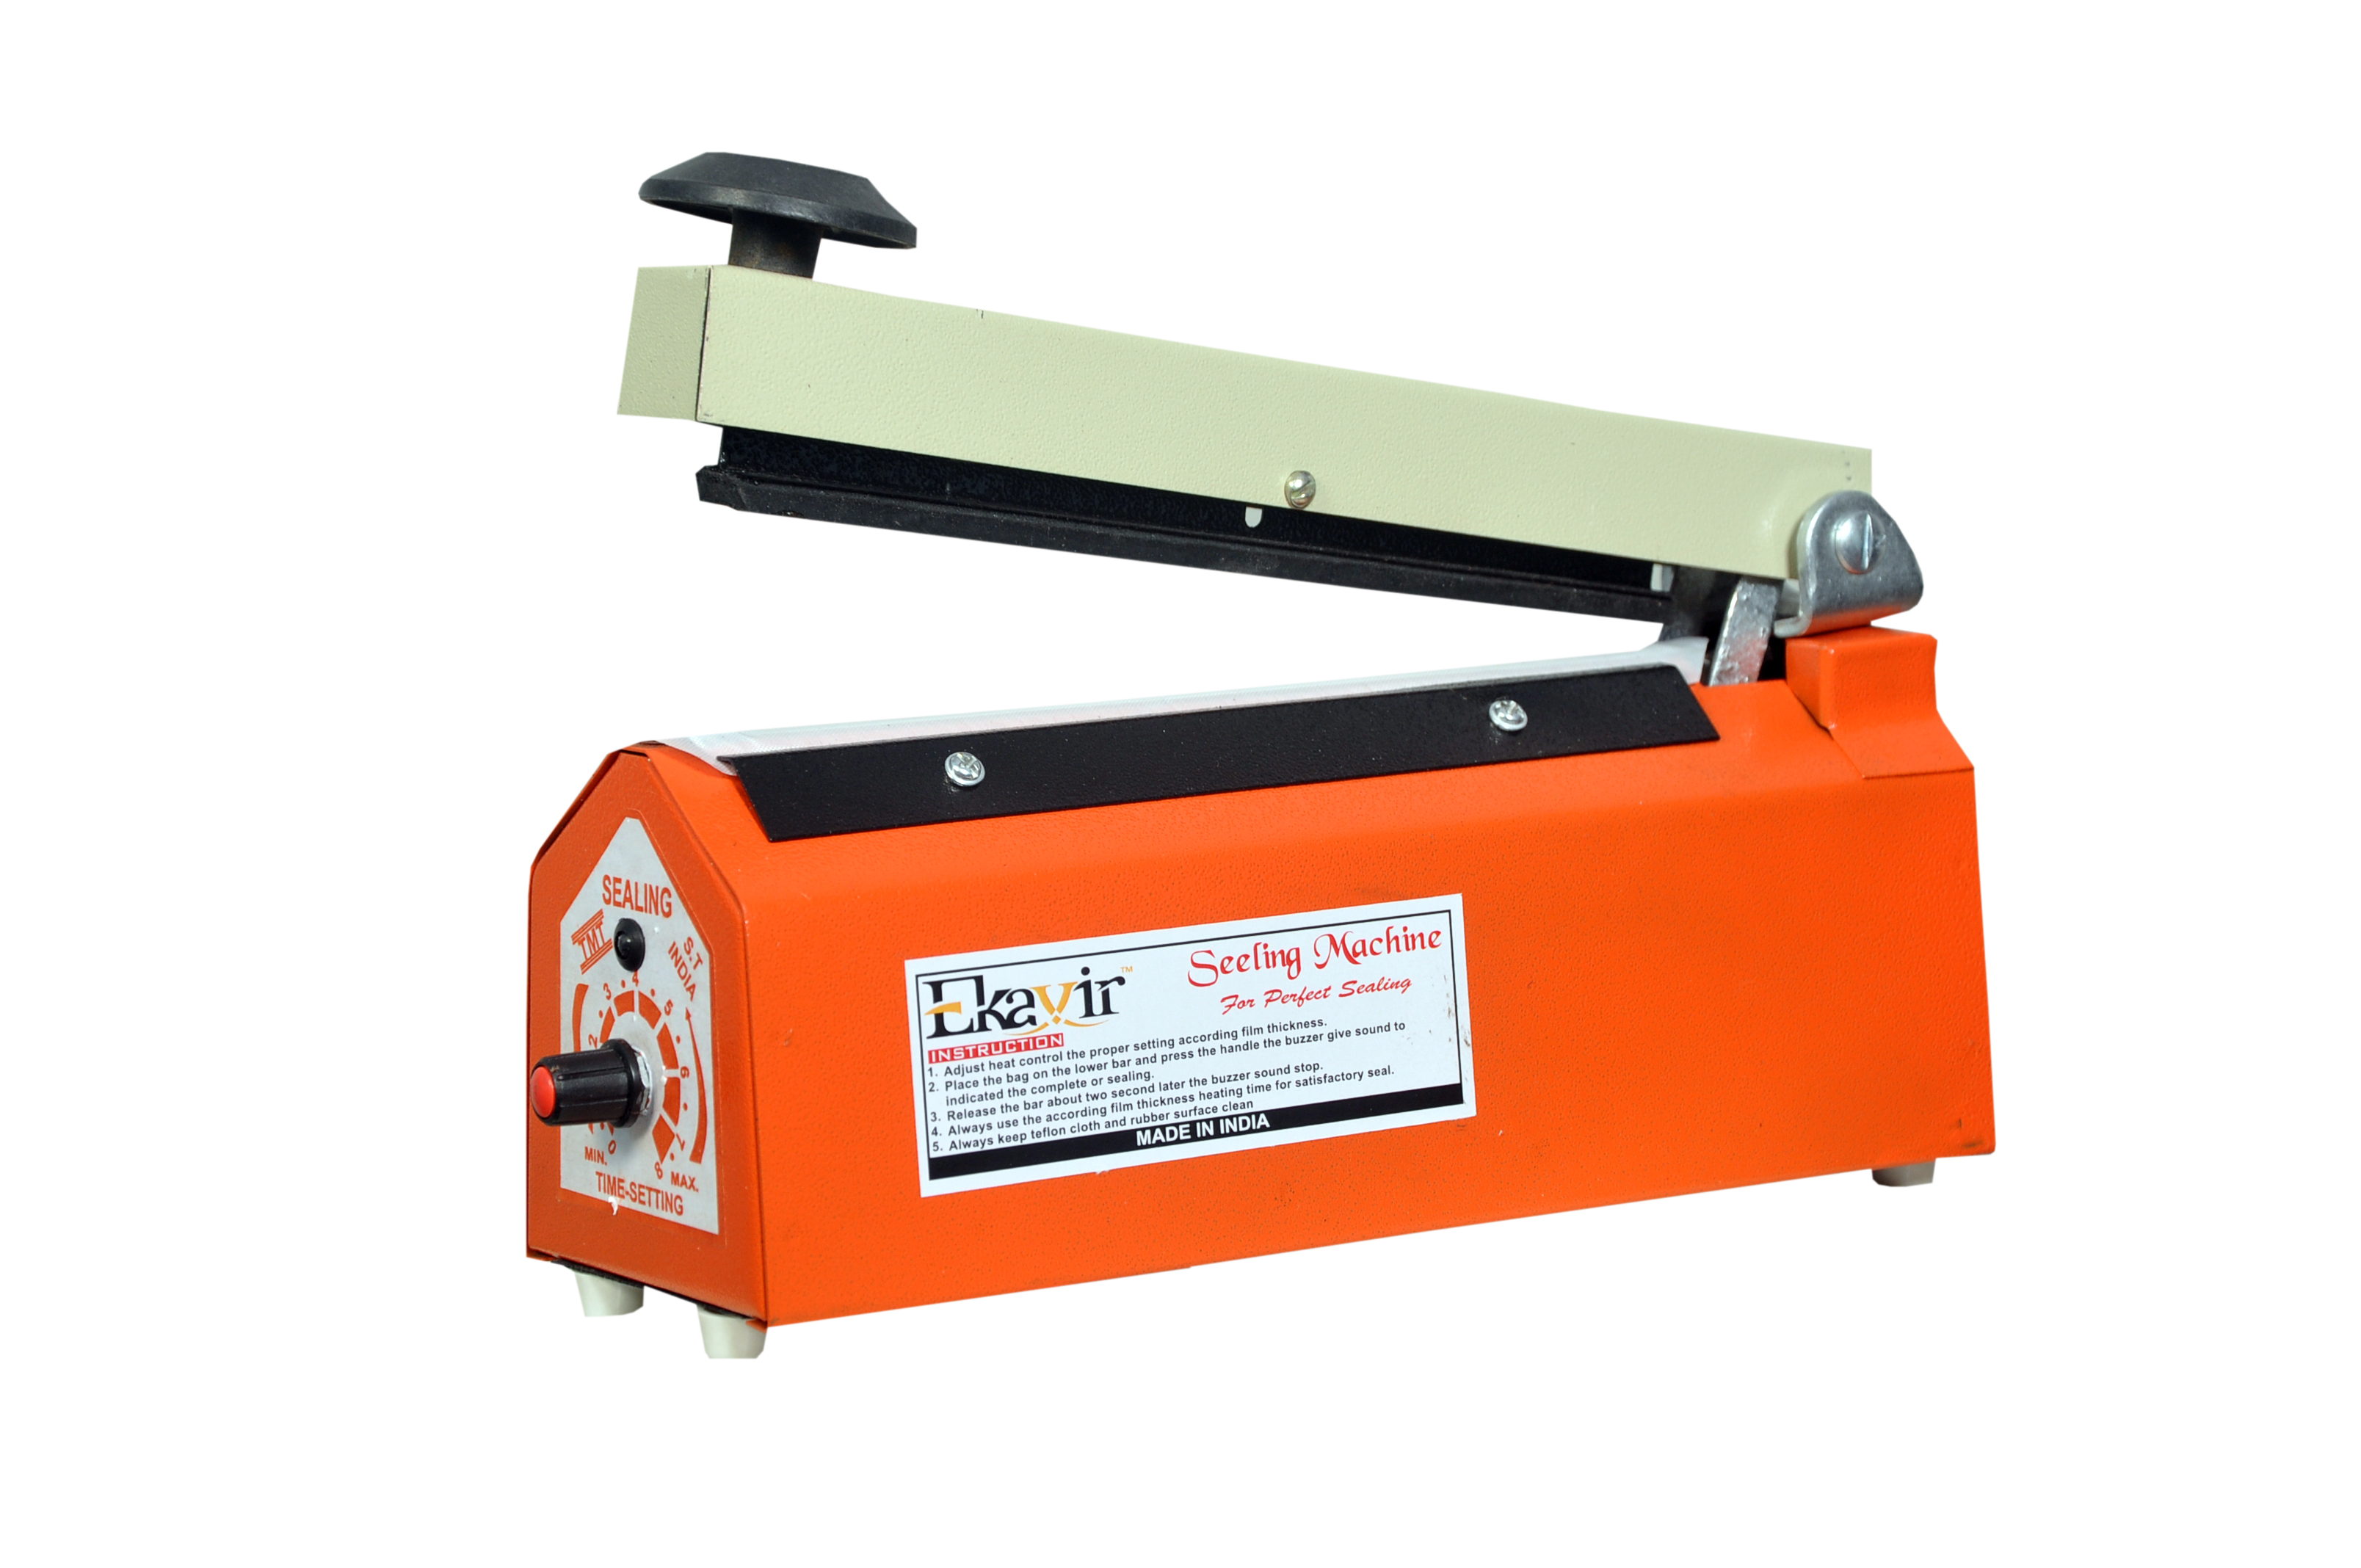 Sealing Machine PFS Impulse Bag Sealer Poly Bag Heat Seal Closer with Replacement Heating Element